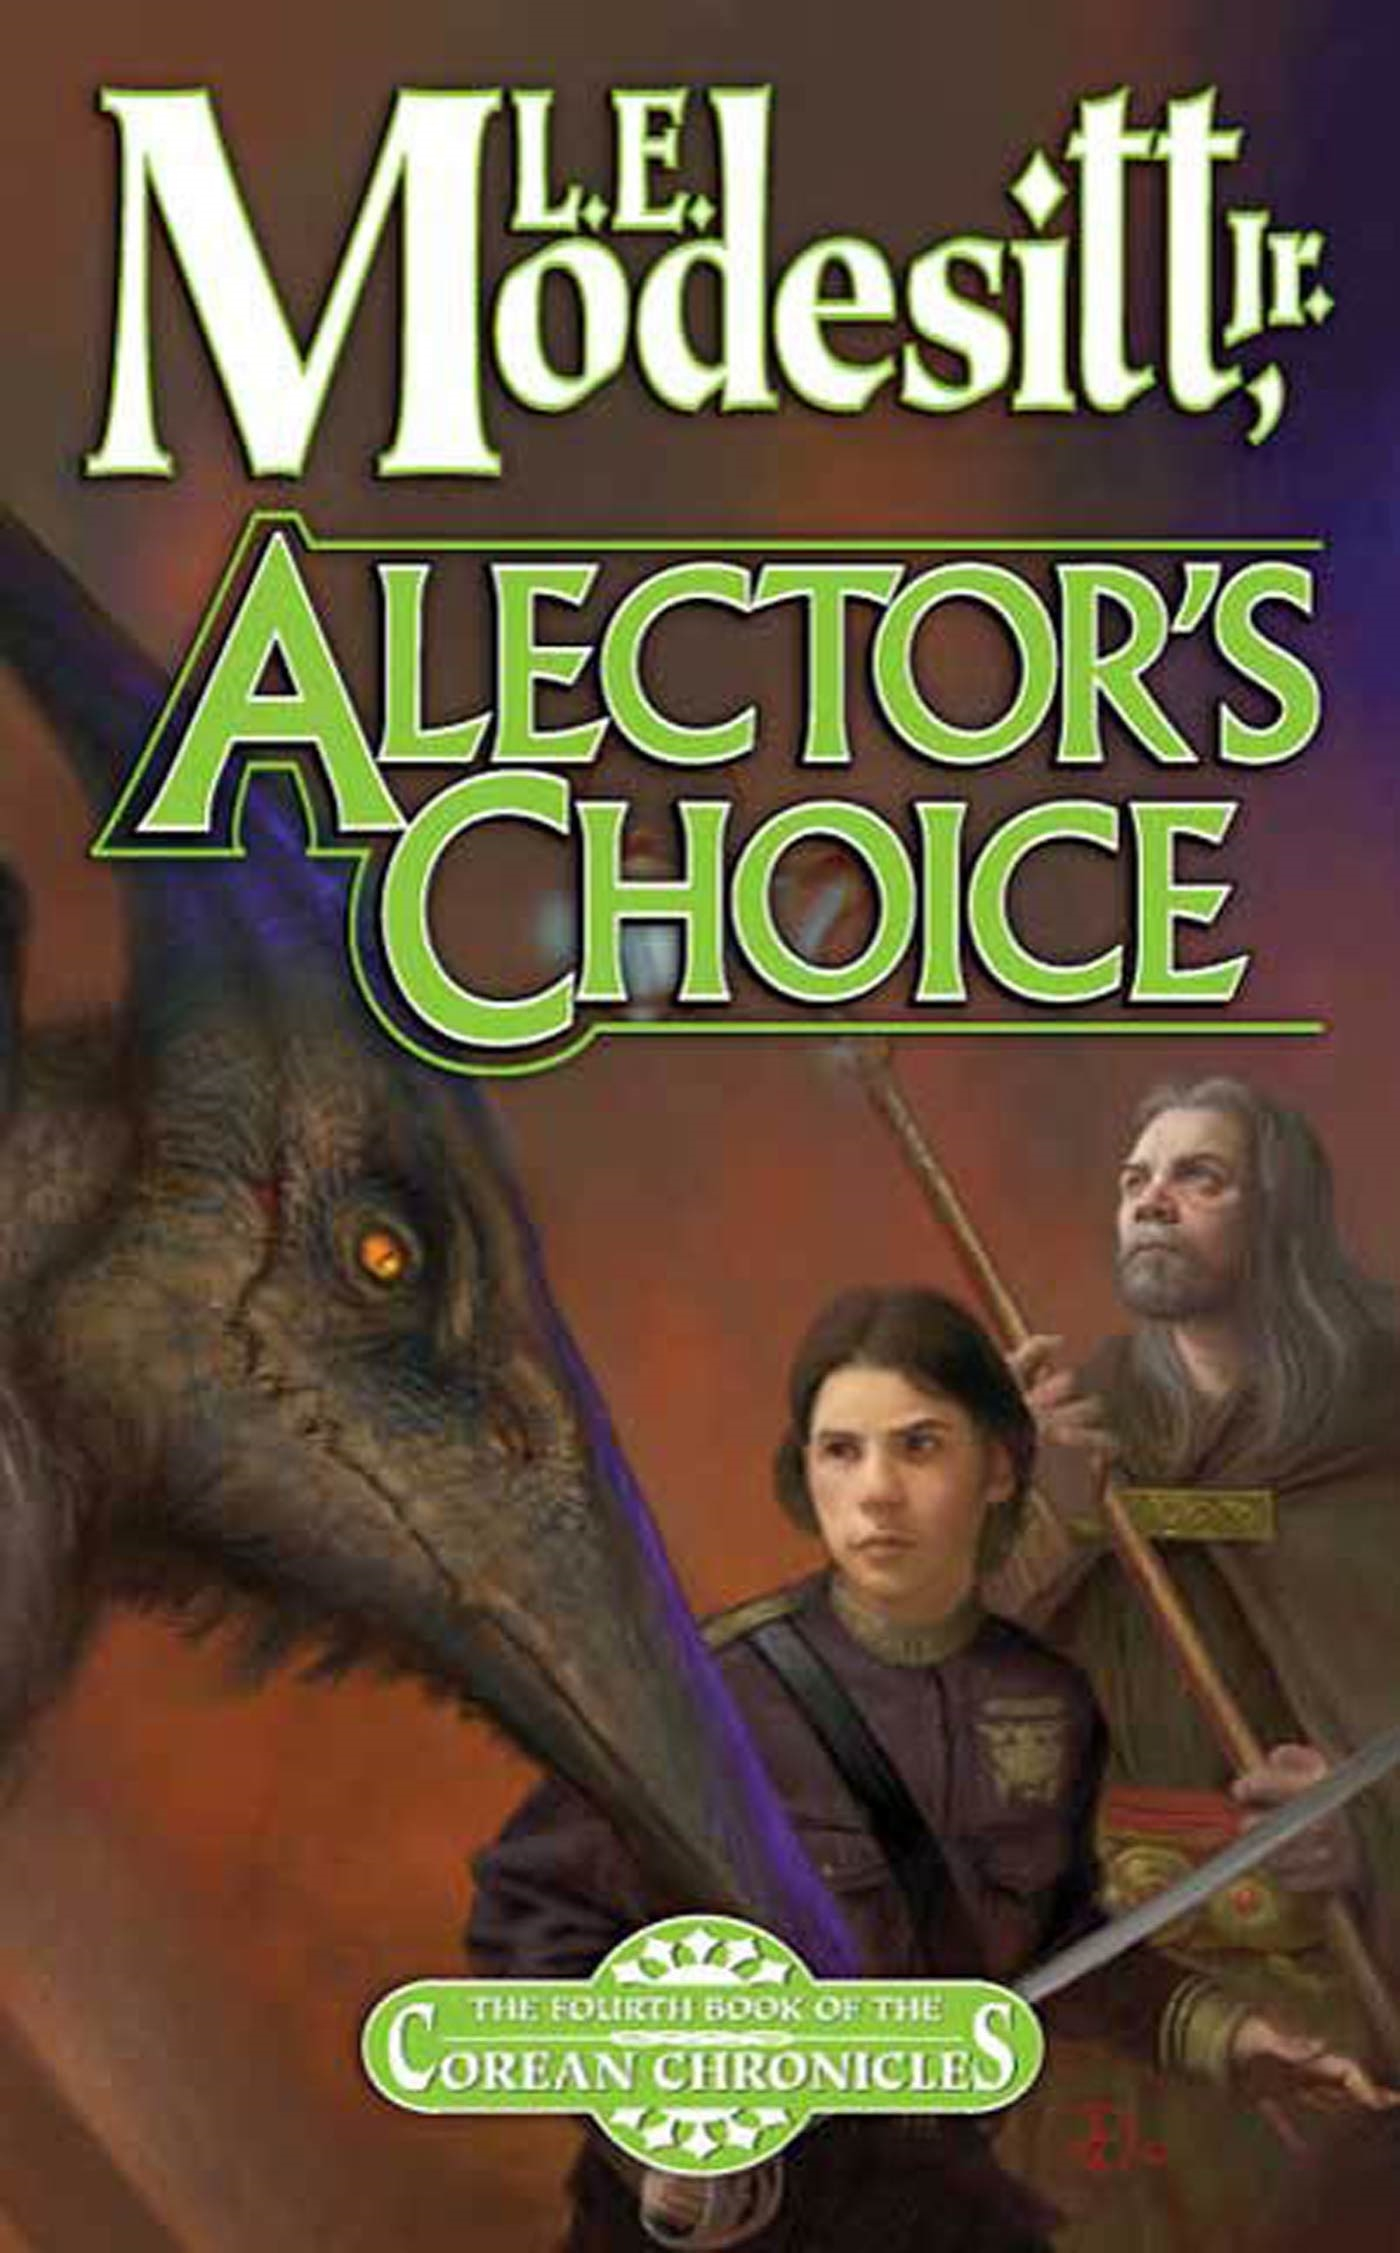 Alector's Choice The Fourth Book of the Corean Chronicles